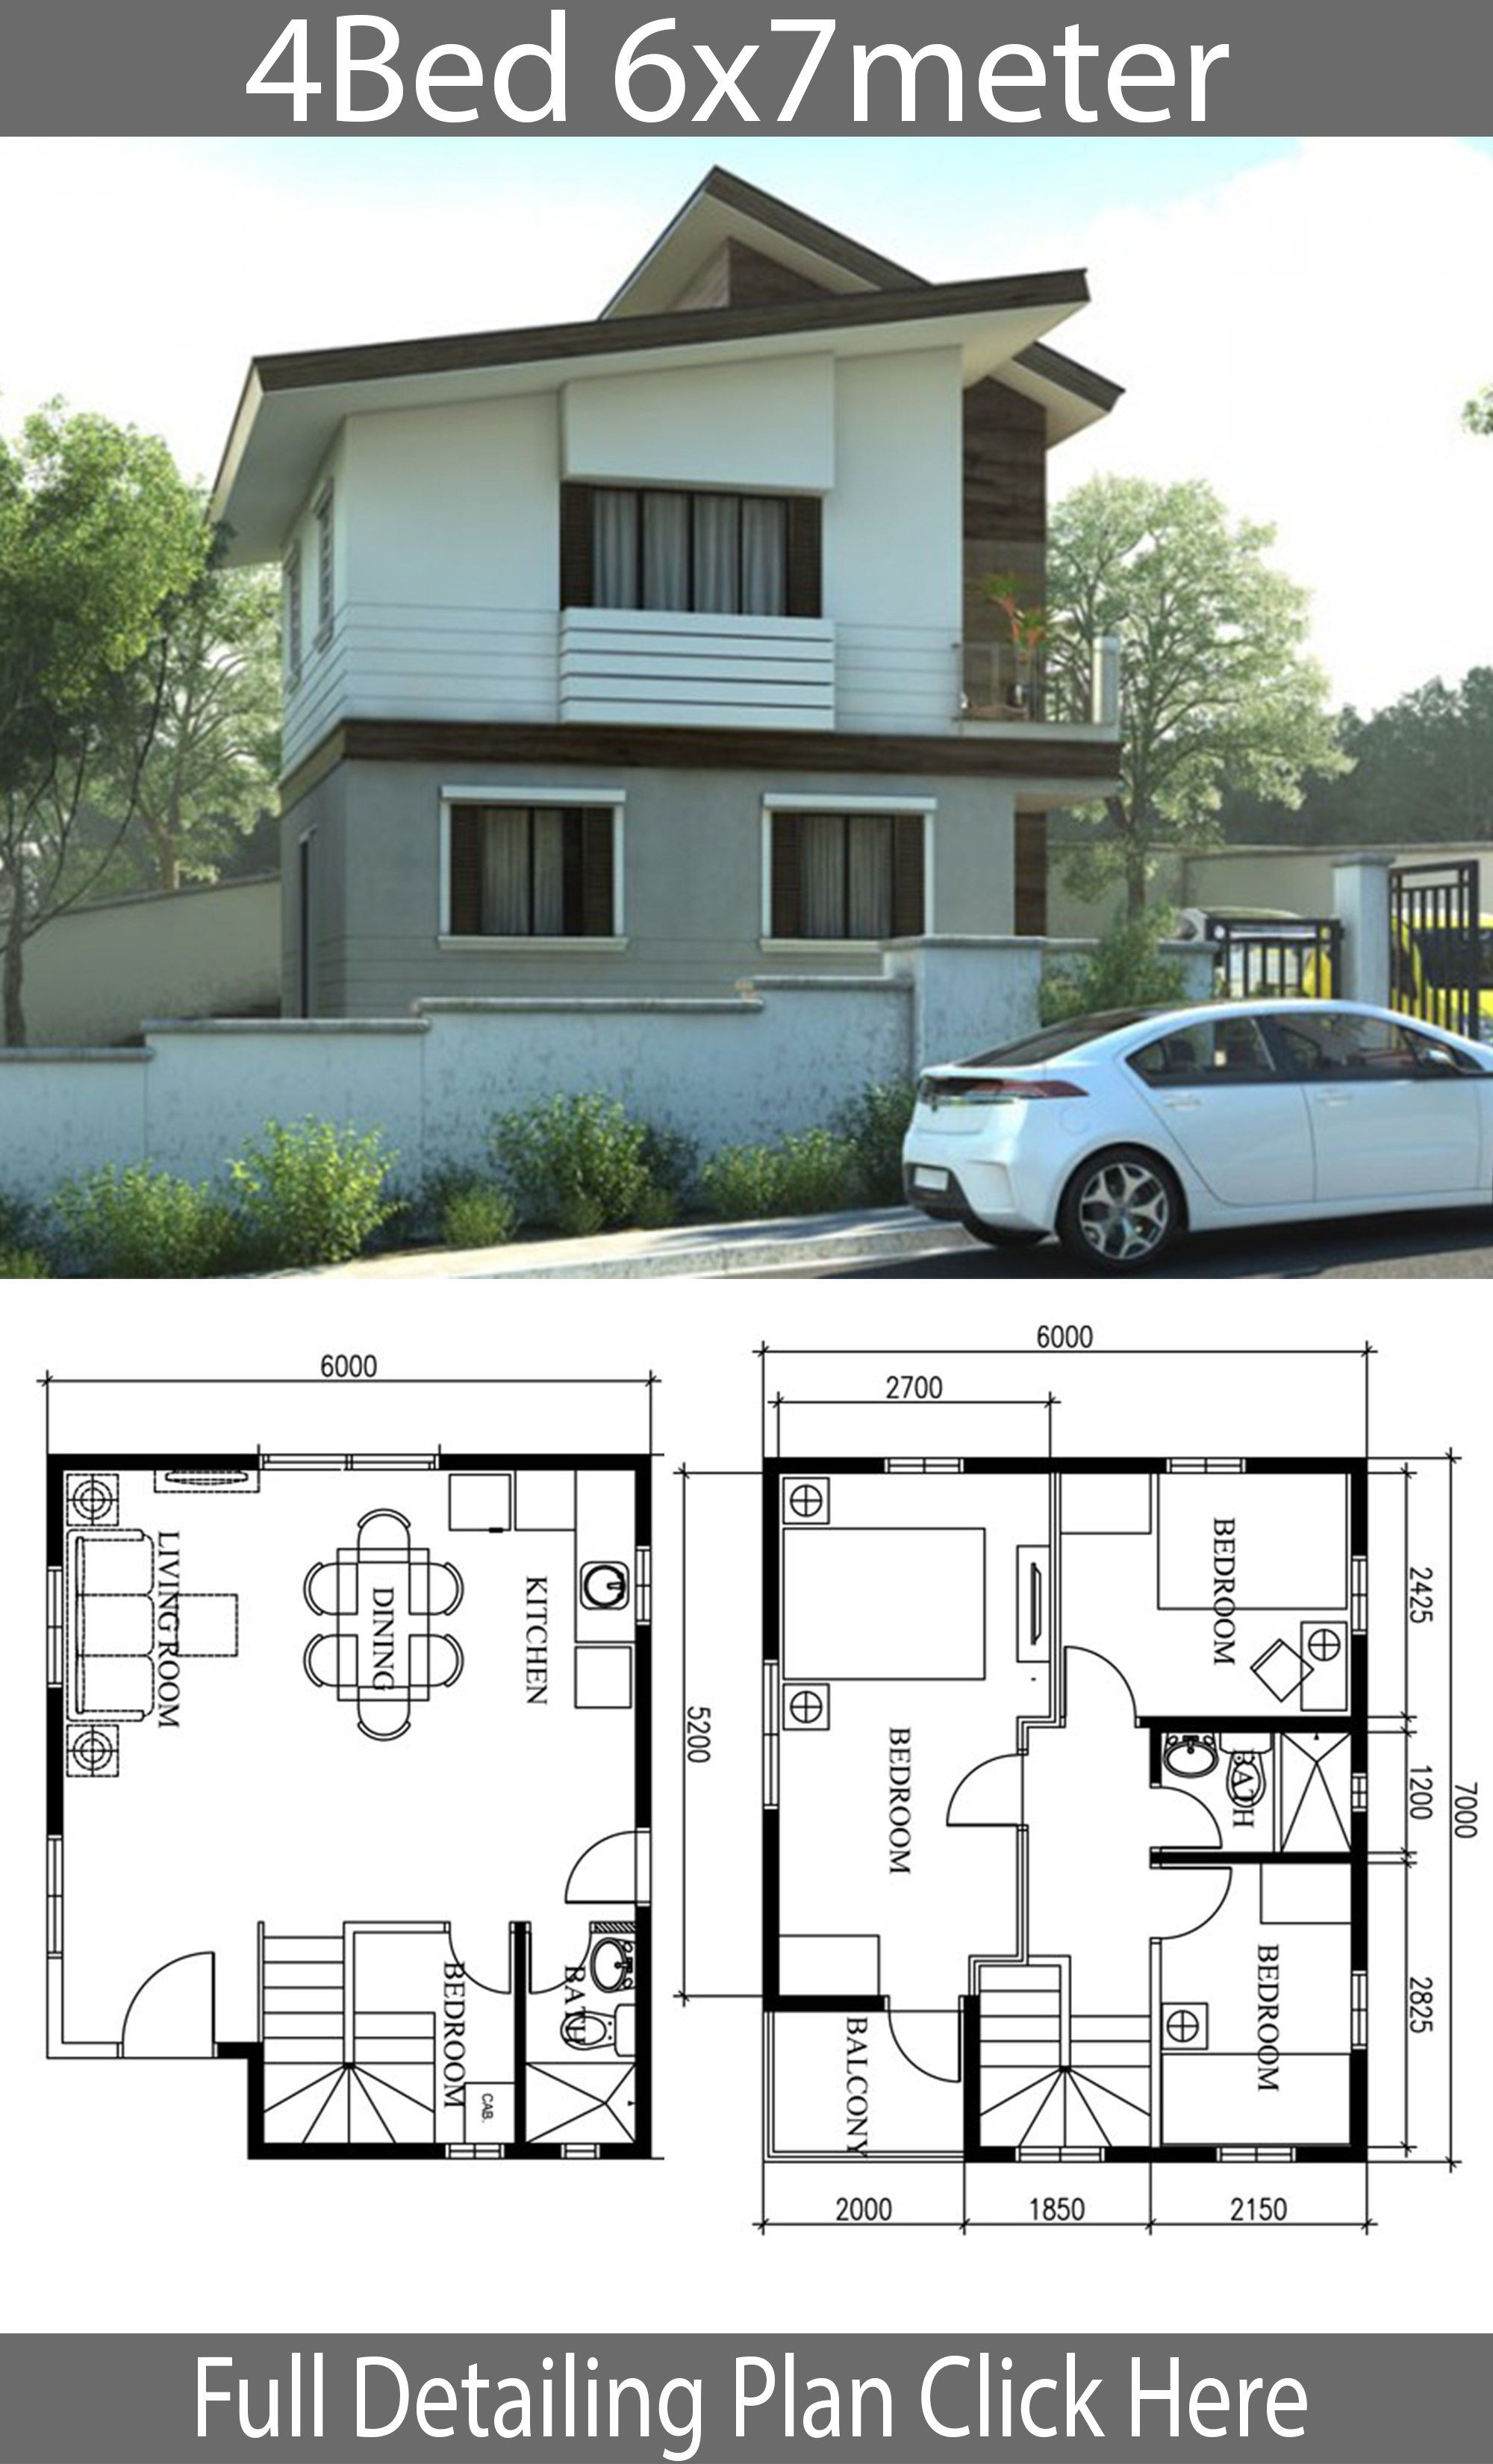 Small Home Design Plan 6x7m With 4 Bedrooms Home Plans Small House Design Home Design Plan 2 Storey House Design